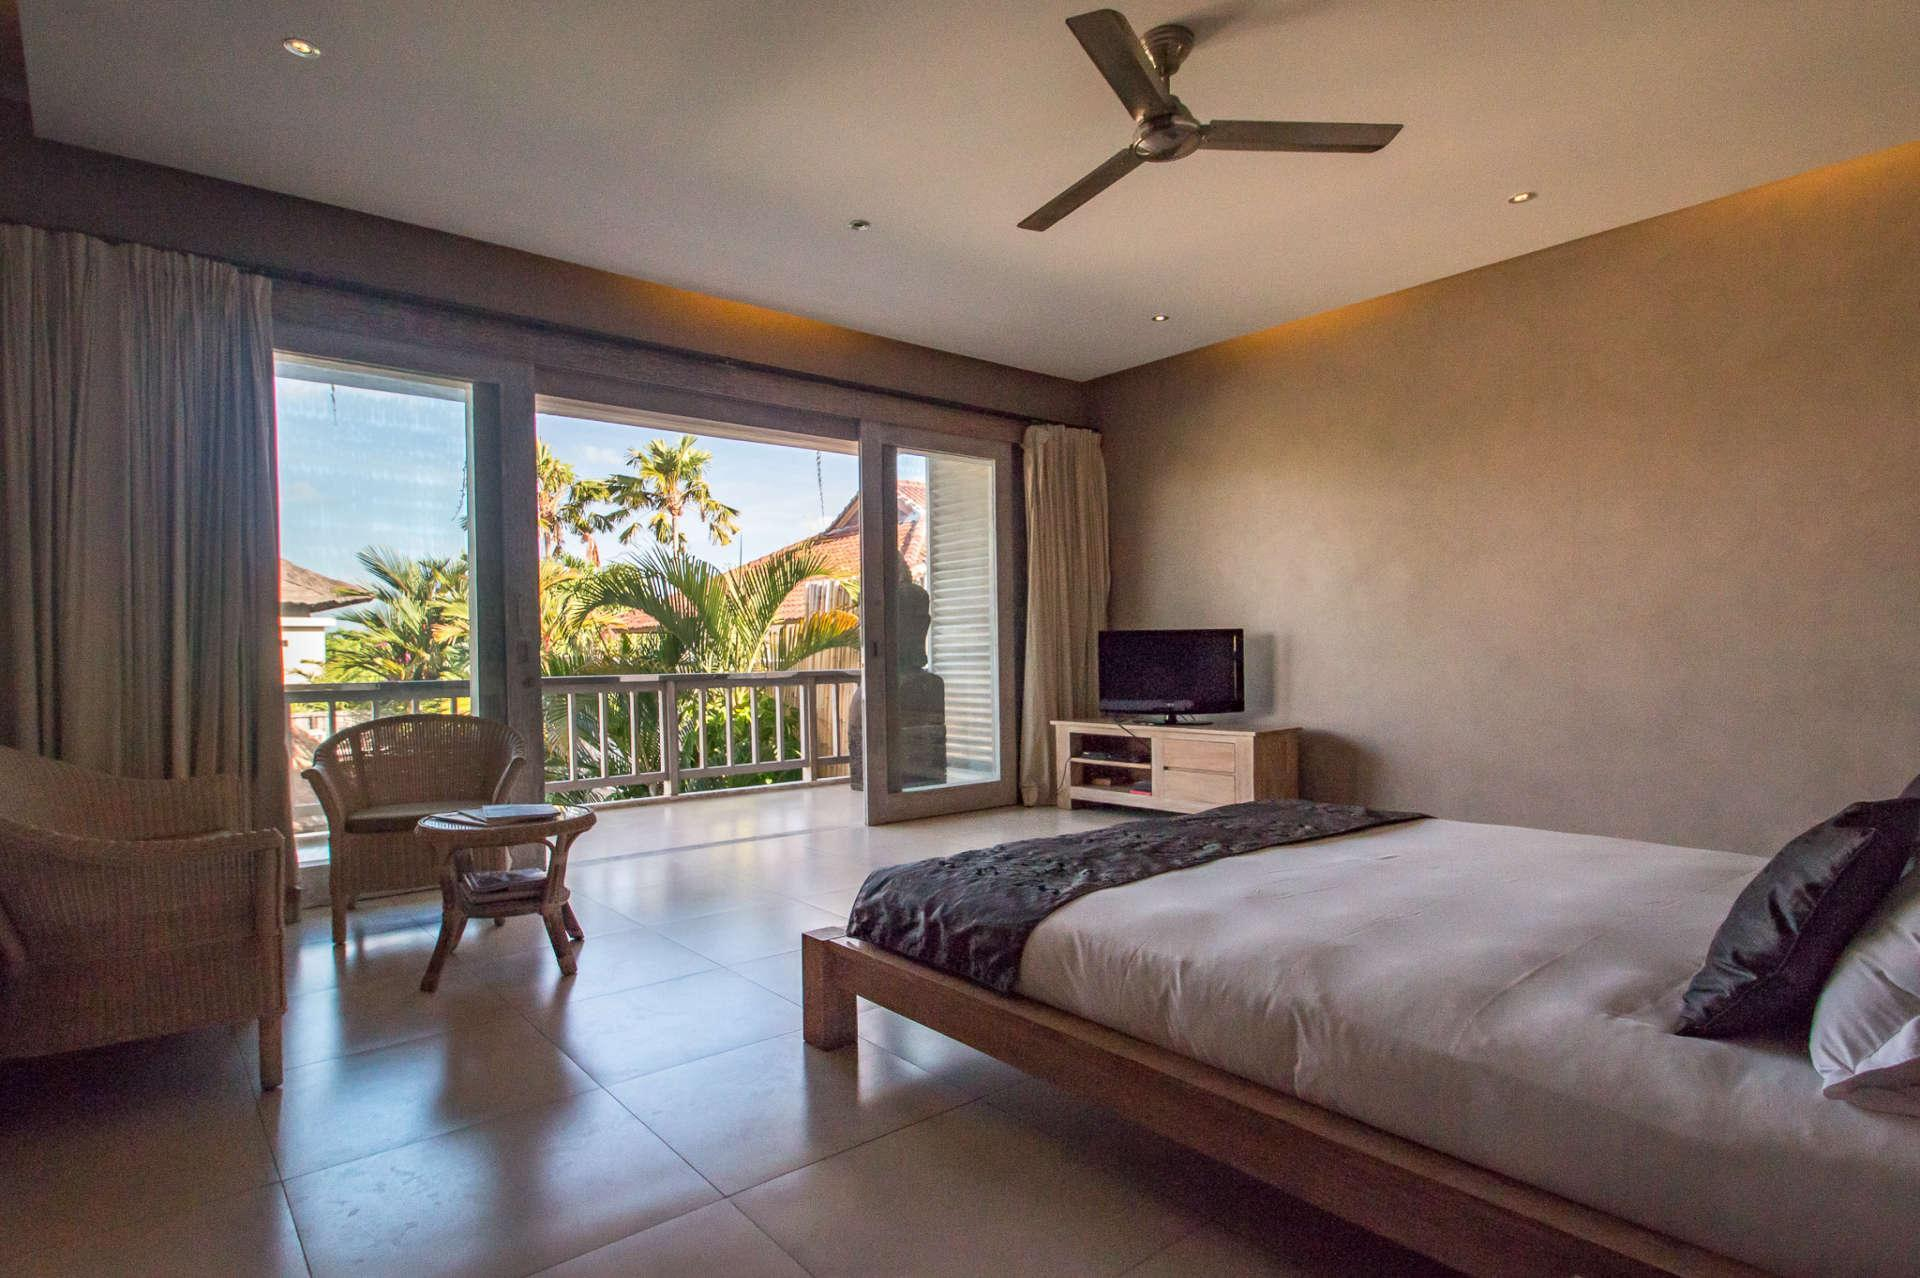 Imagine Your Family Renting A Luxury Holiday Villa Close To Seminyaks Main Attractions